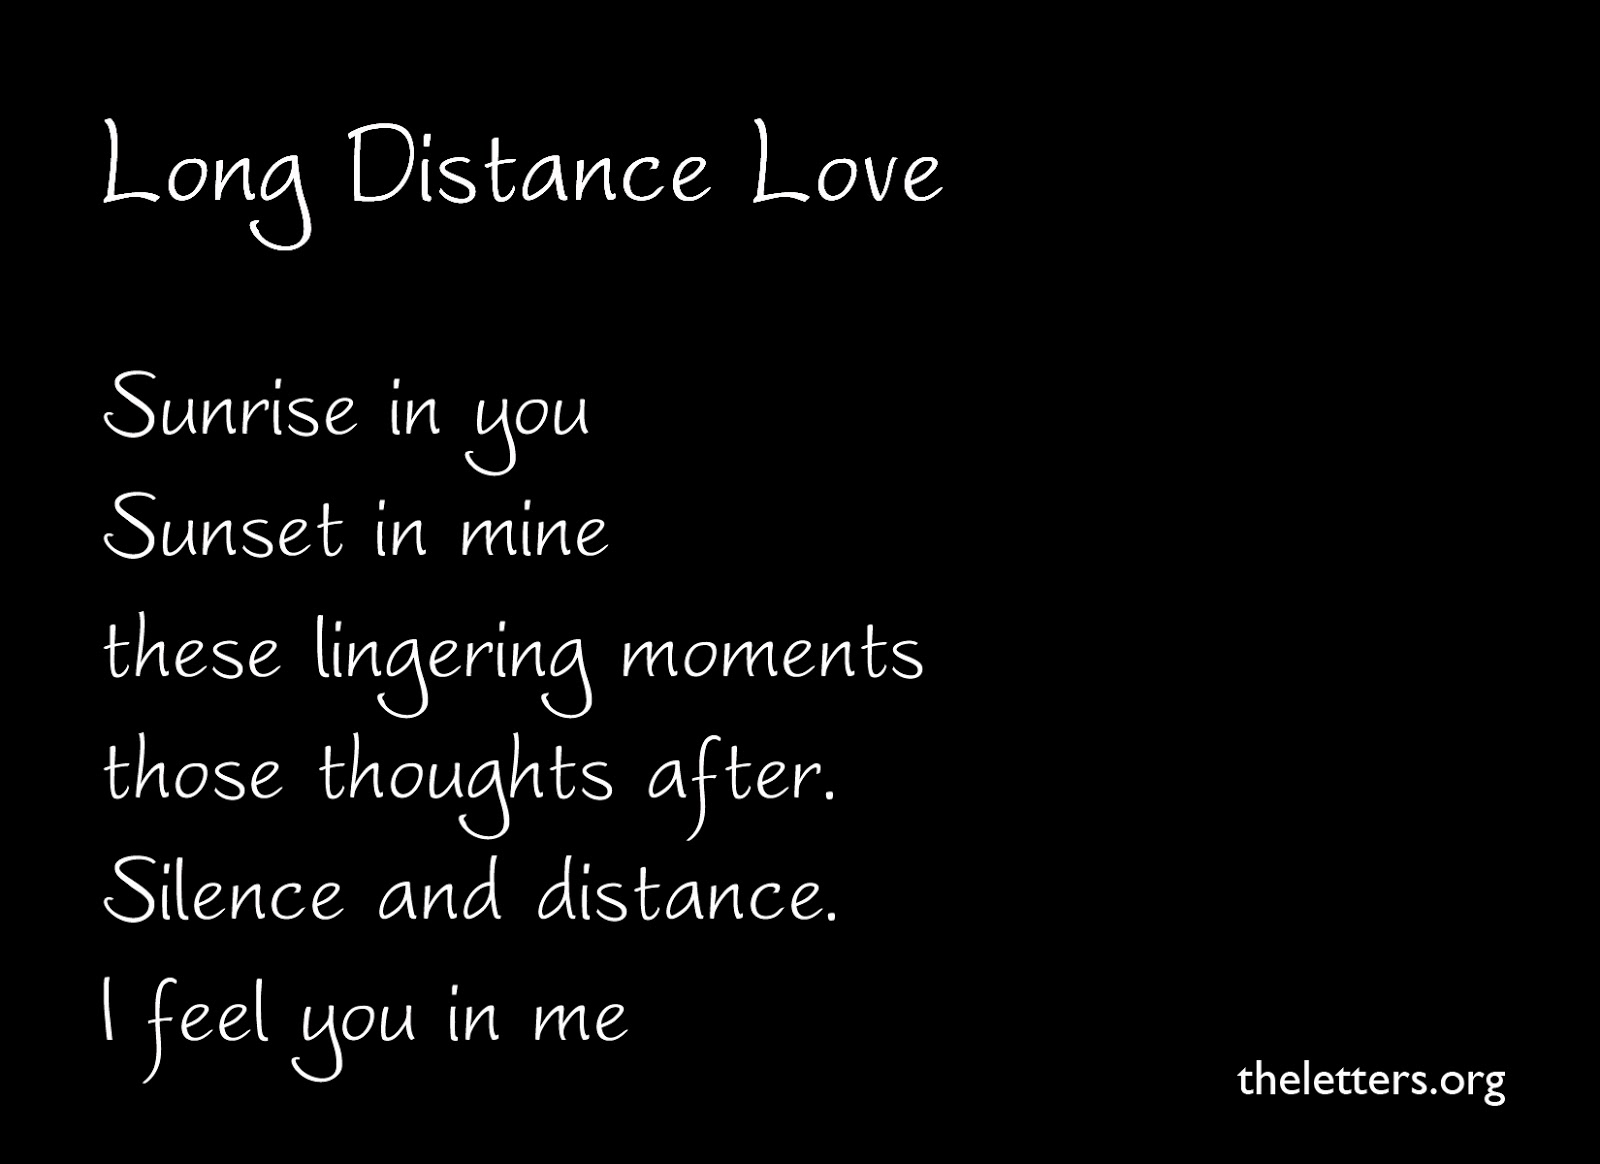 Dating long distance relationships